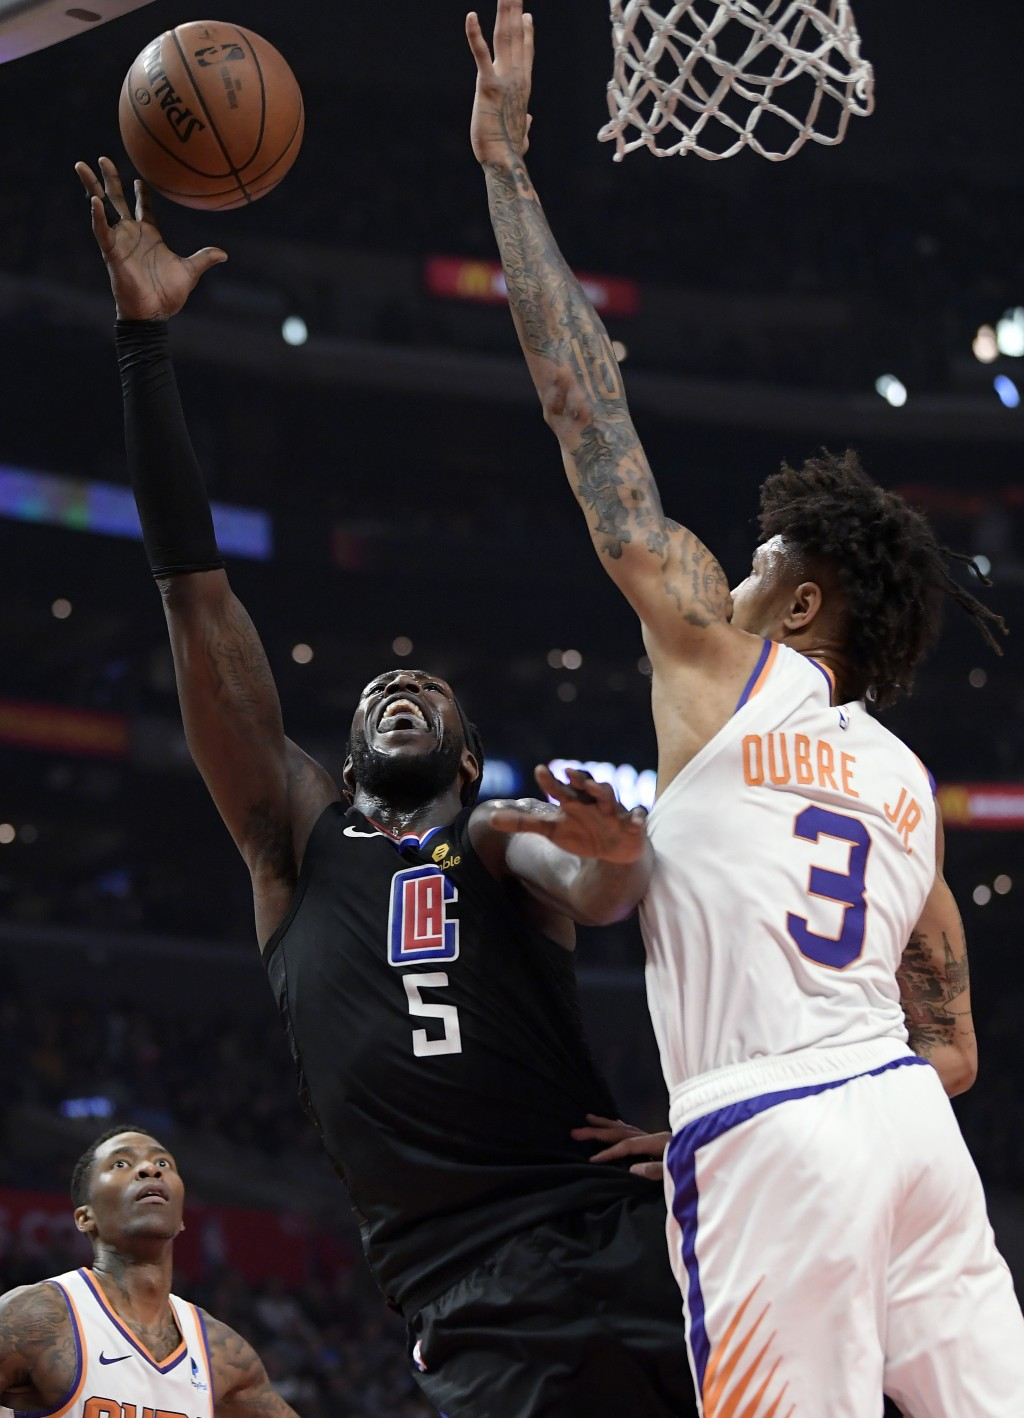 Los Angeles Clippers forward Montrezl Harrell, center, shoots as Phoenix Suns forward Kelly Oubre Jr., right, defends and guard Jamal Crawford watches